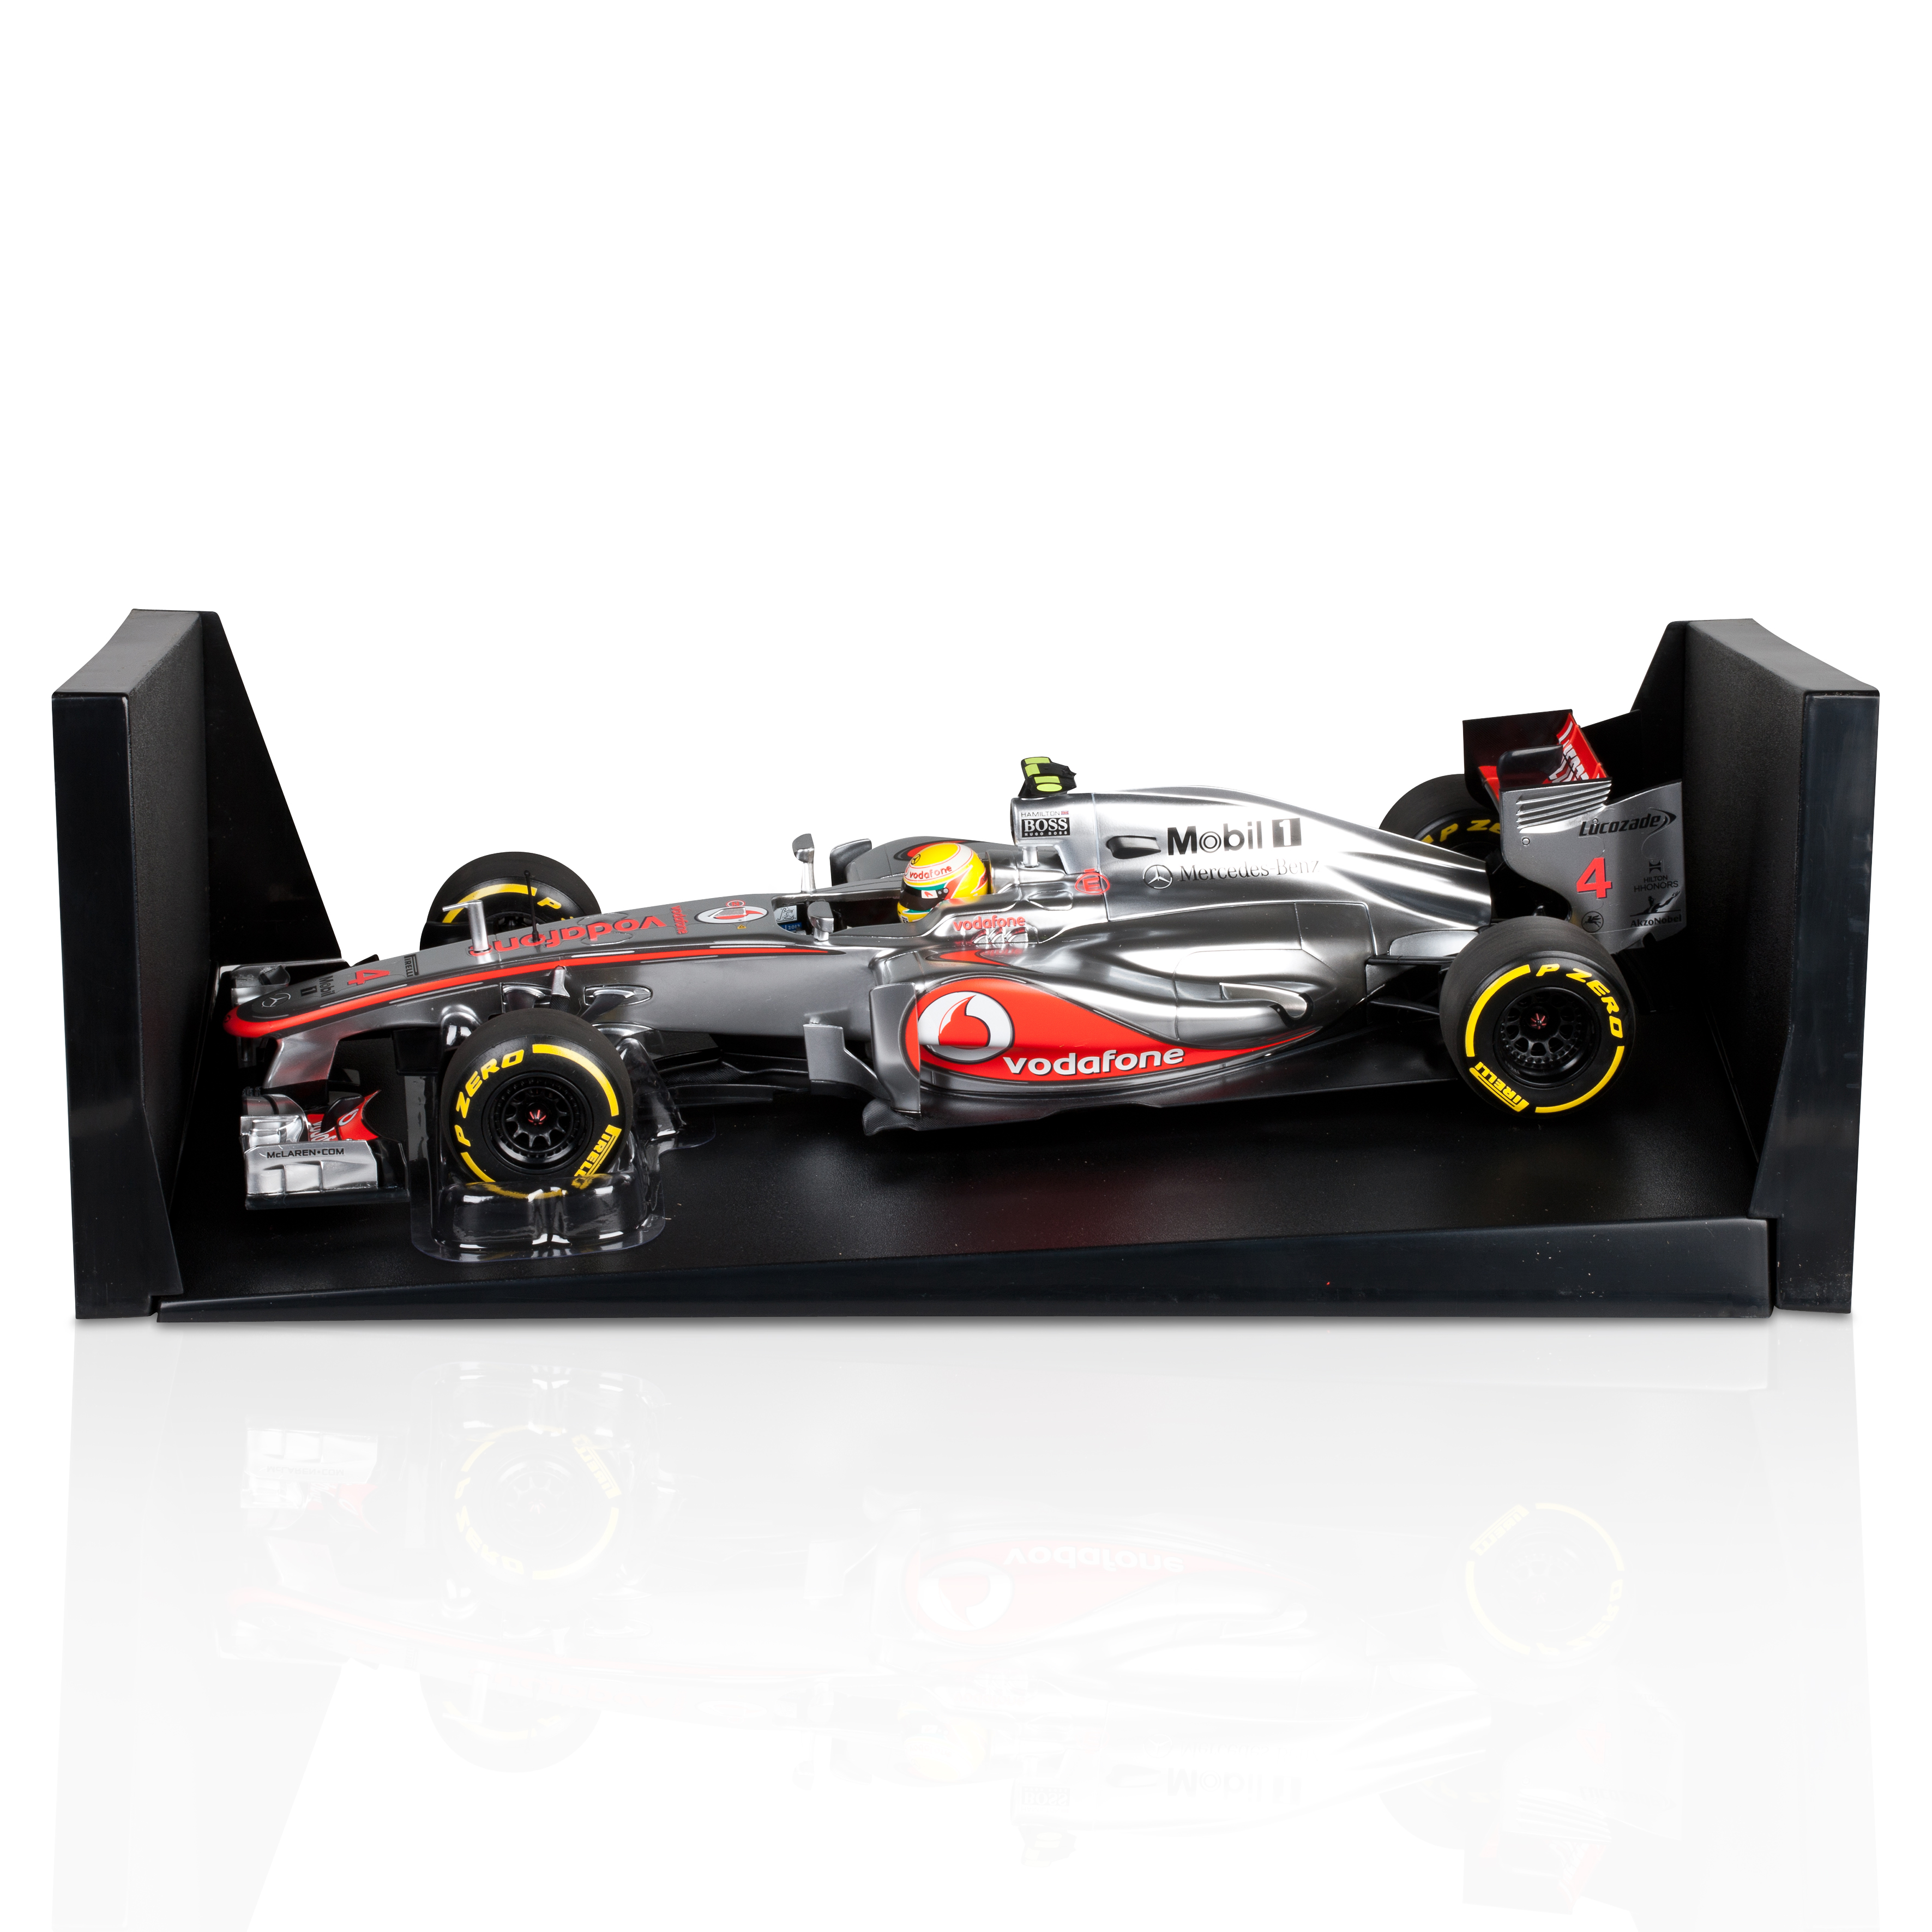 Vodafone Mclaren Mercedes MP4-27 2012 Lewis Hamilton 1:18 Scale